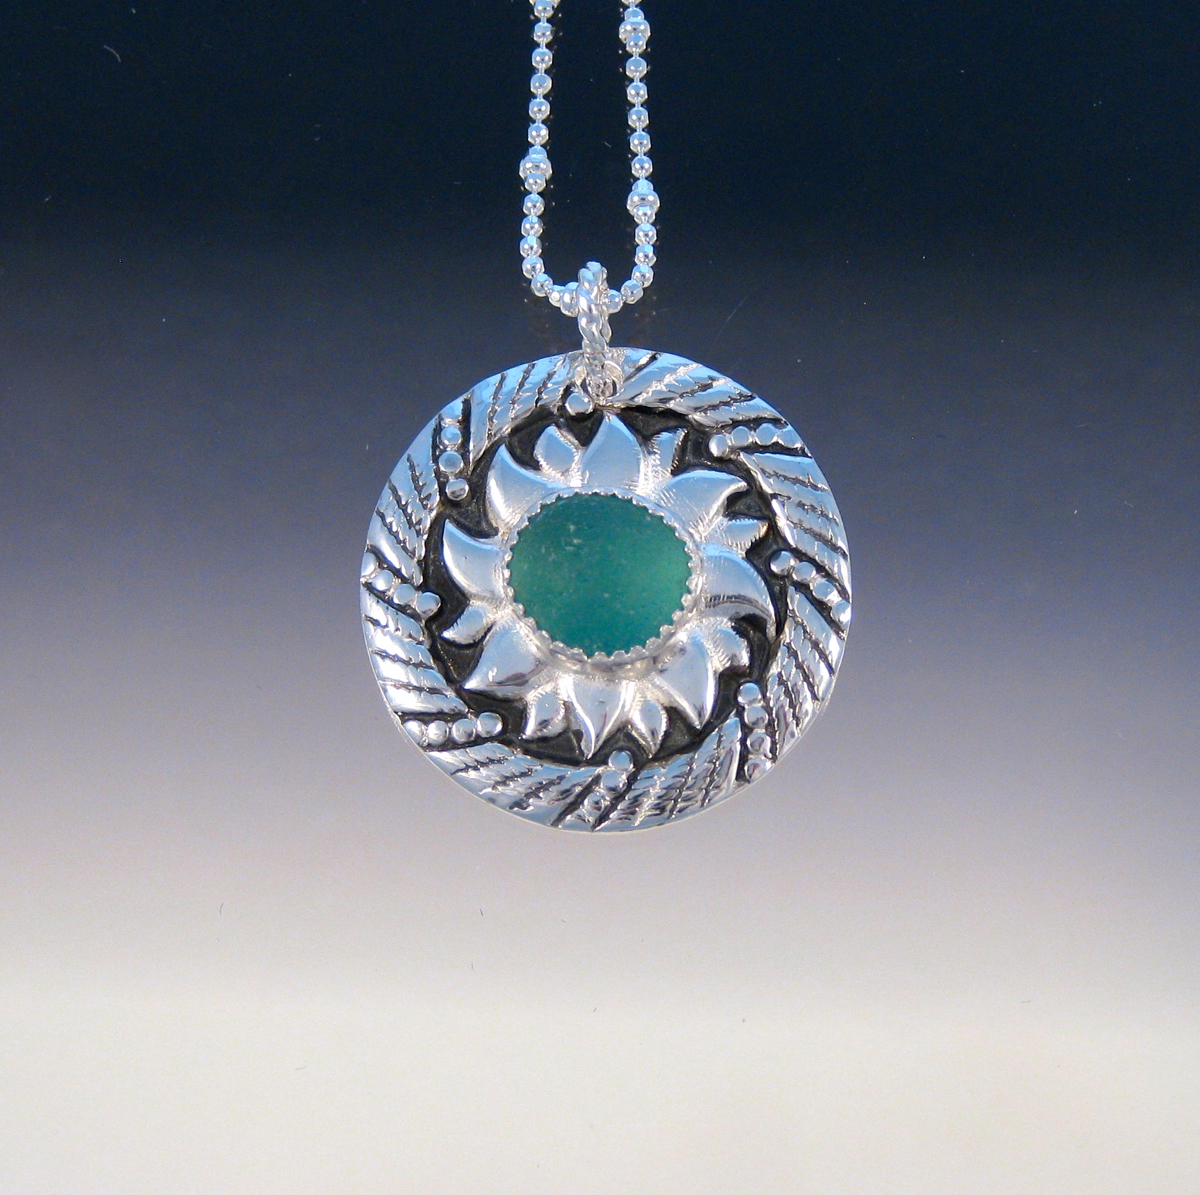 P5032 - Ring of fire pendant (large view)